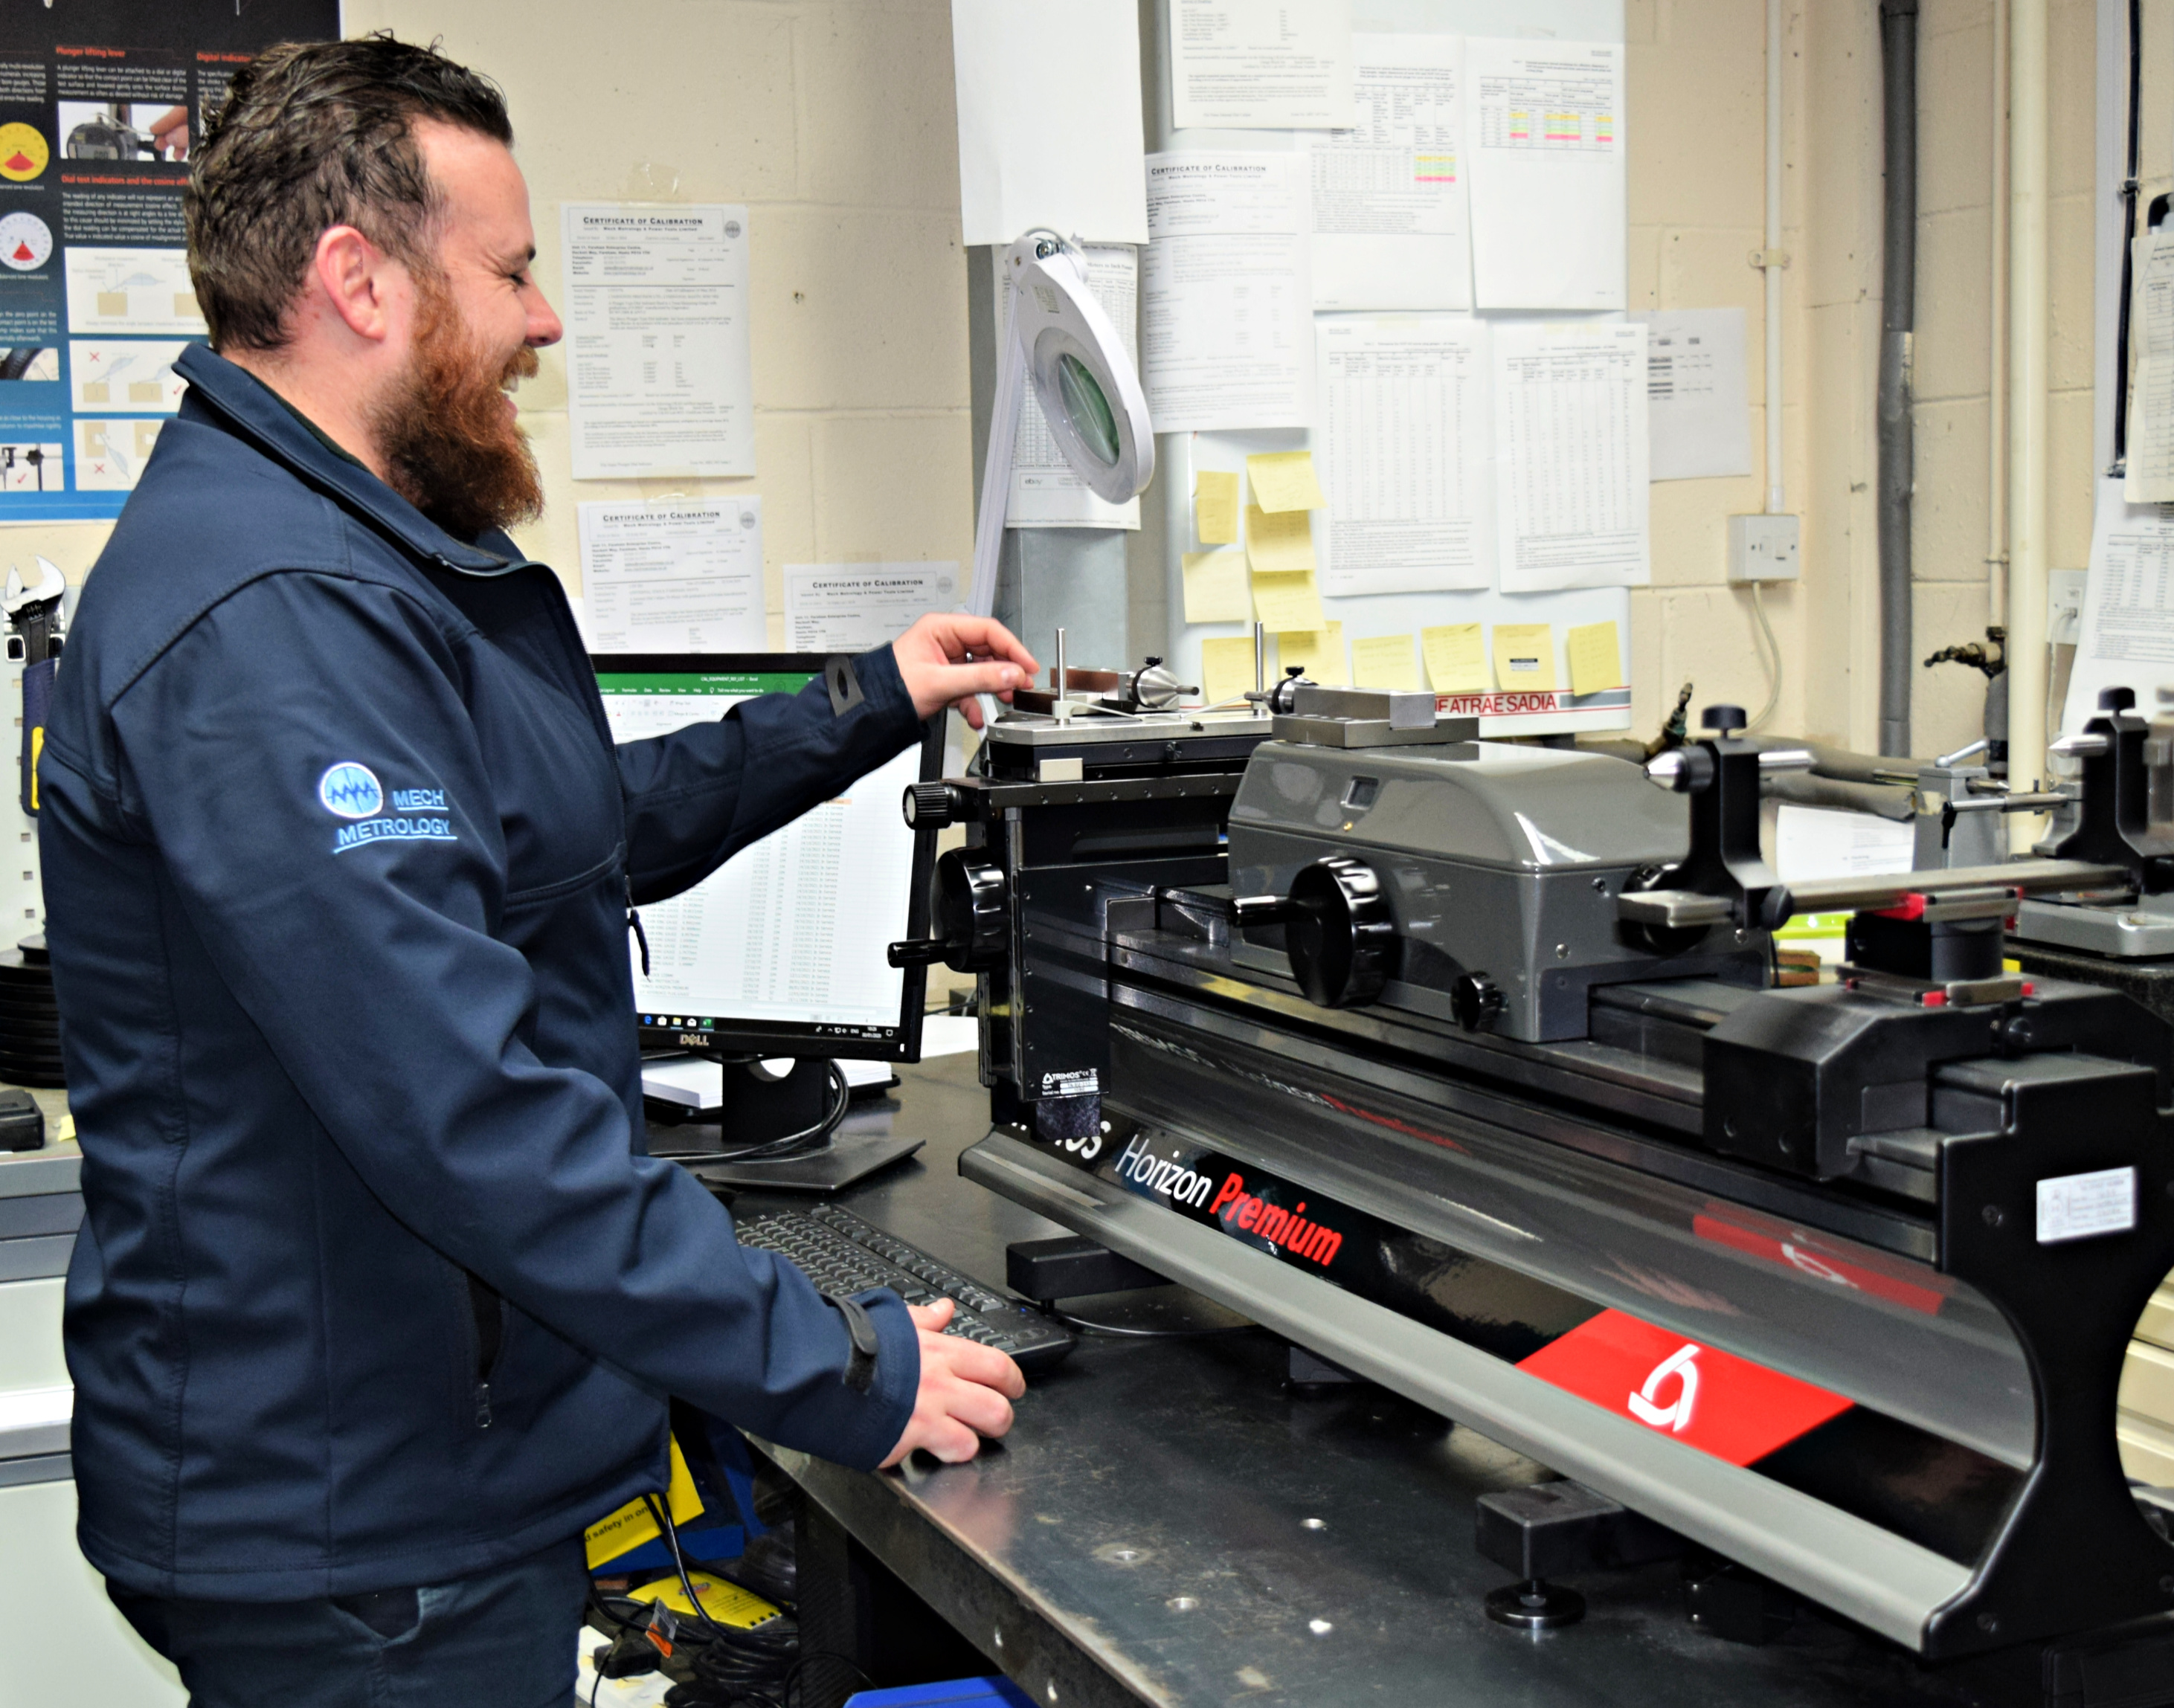 February 2020: MECH Metrology Improves Measurement Certainty by 50% with Trimos Horizon Premium